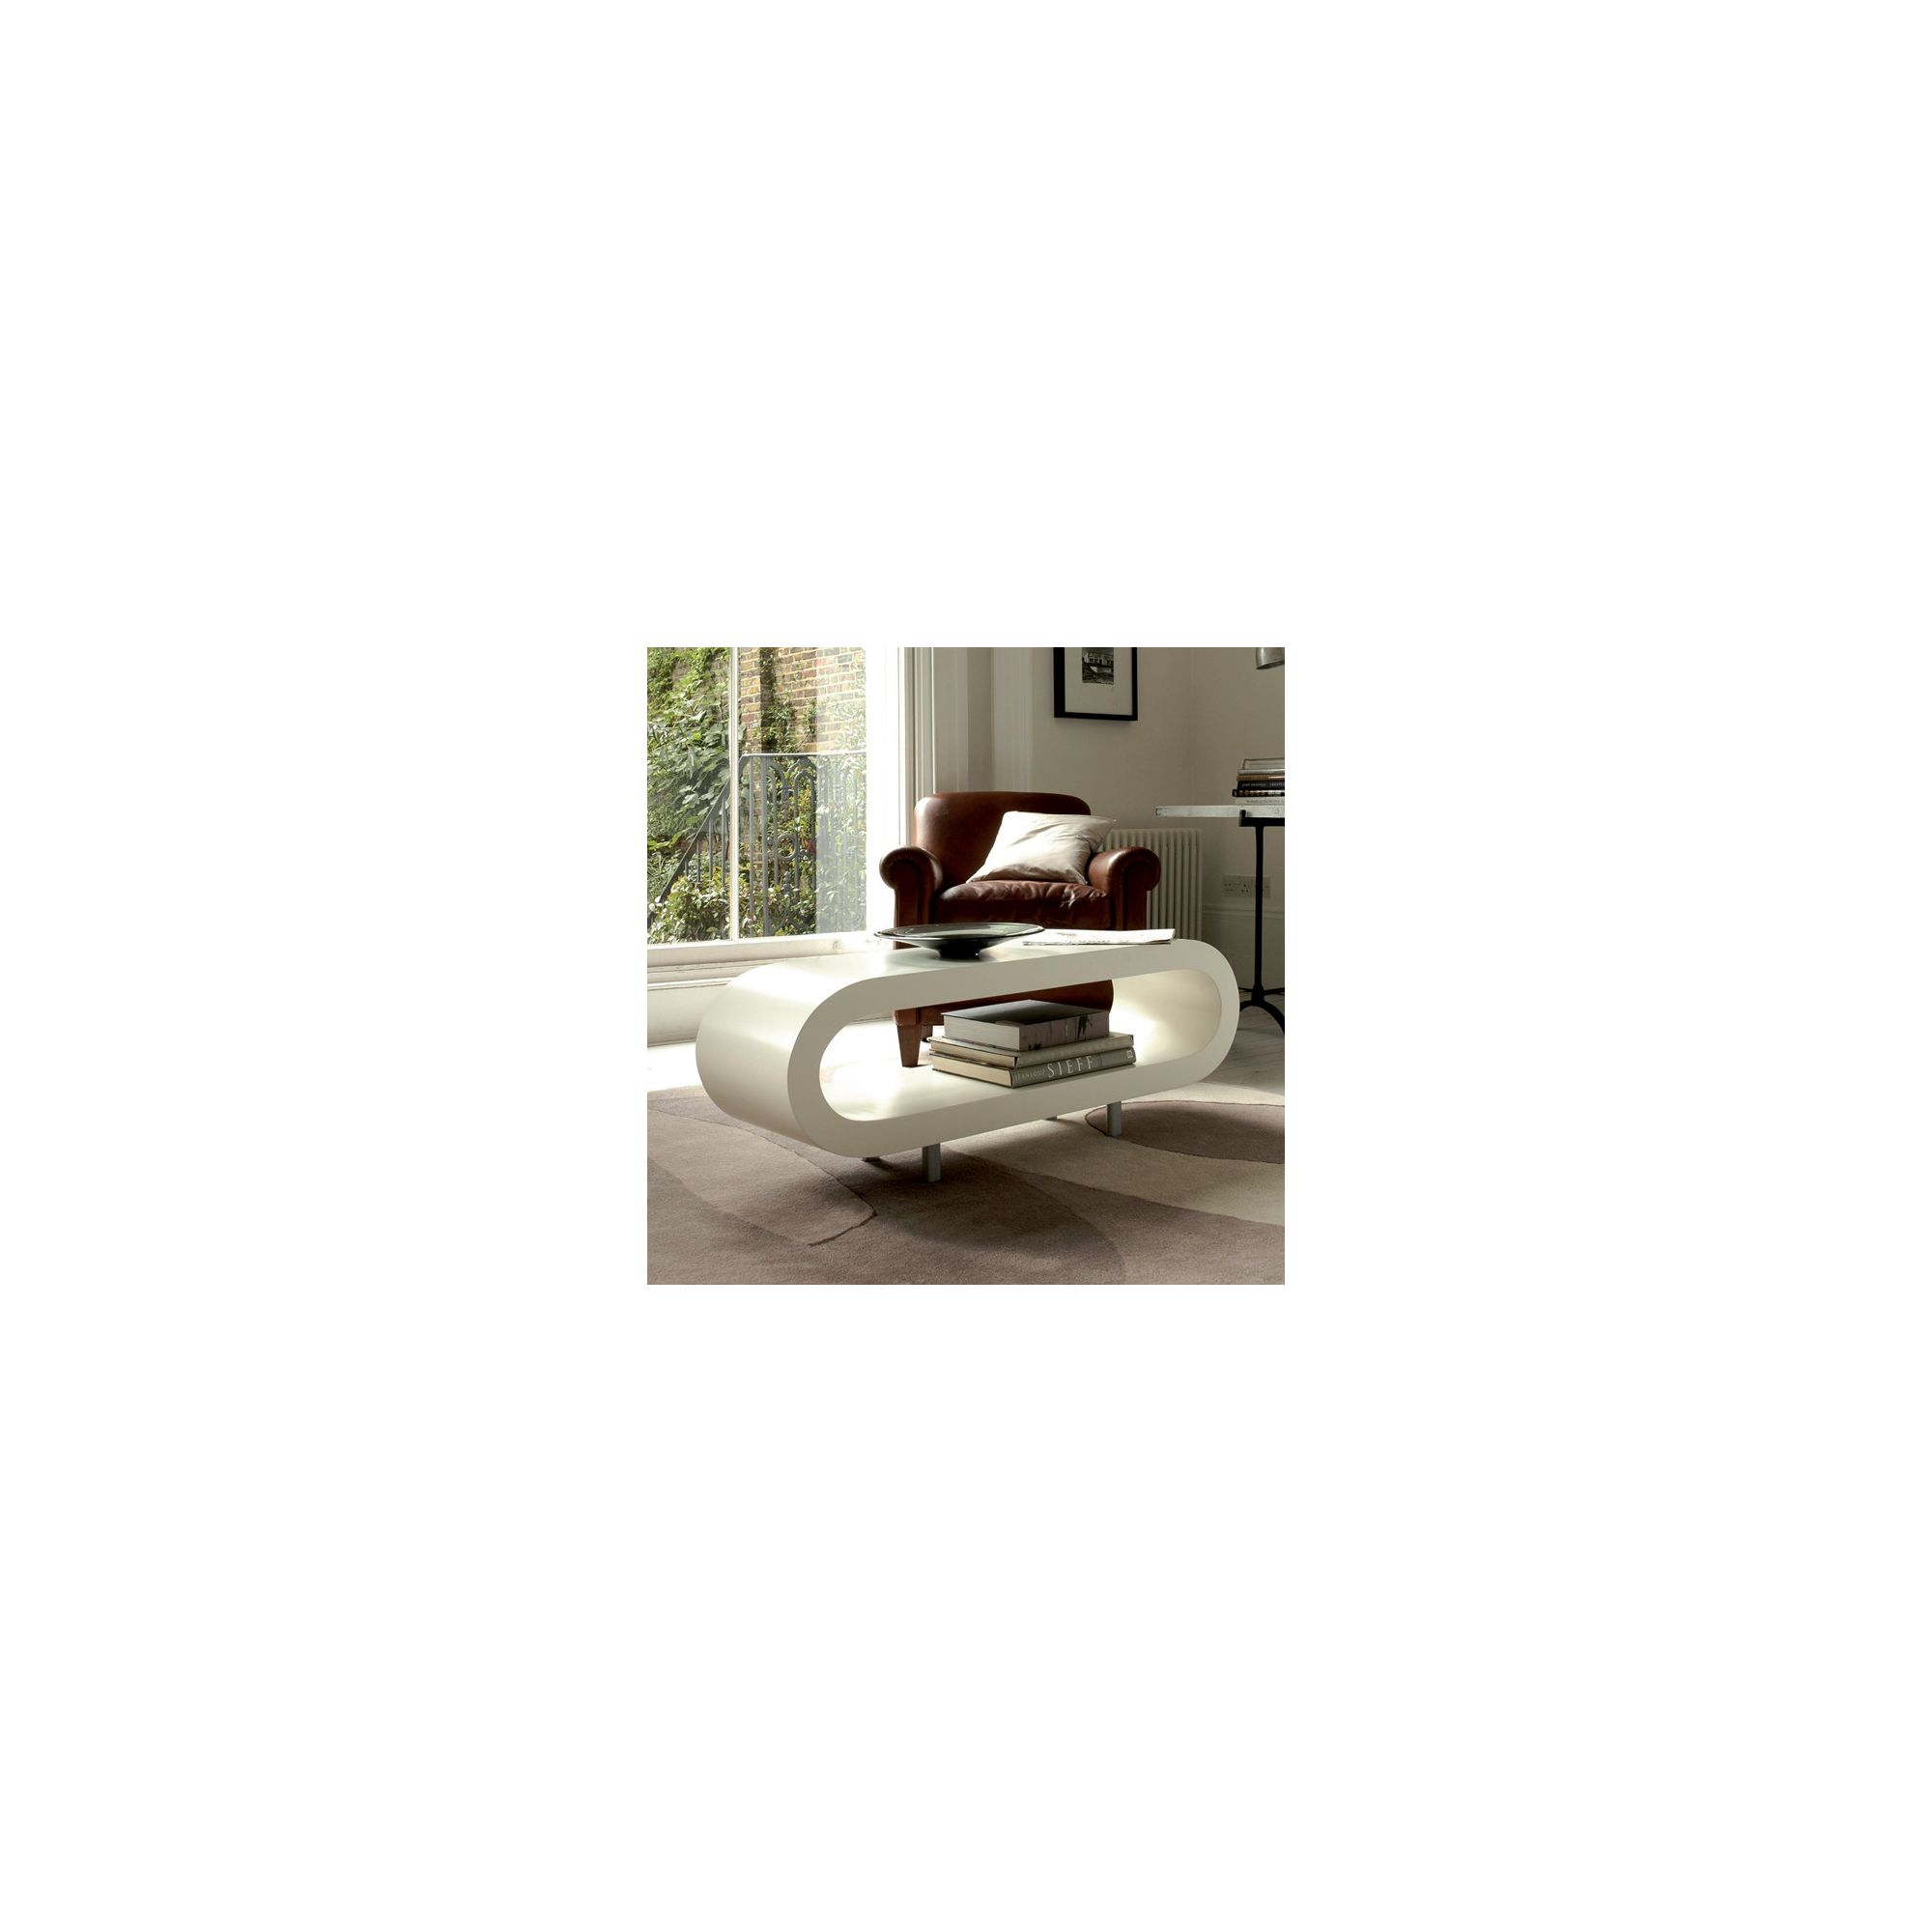 Gillmore Space Loopy Coffee Table - White at Tesco Direct